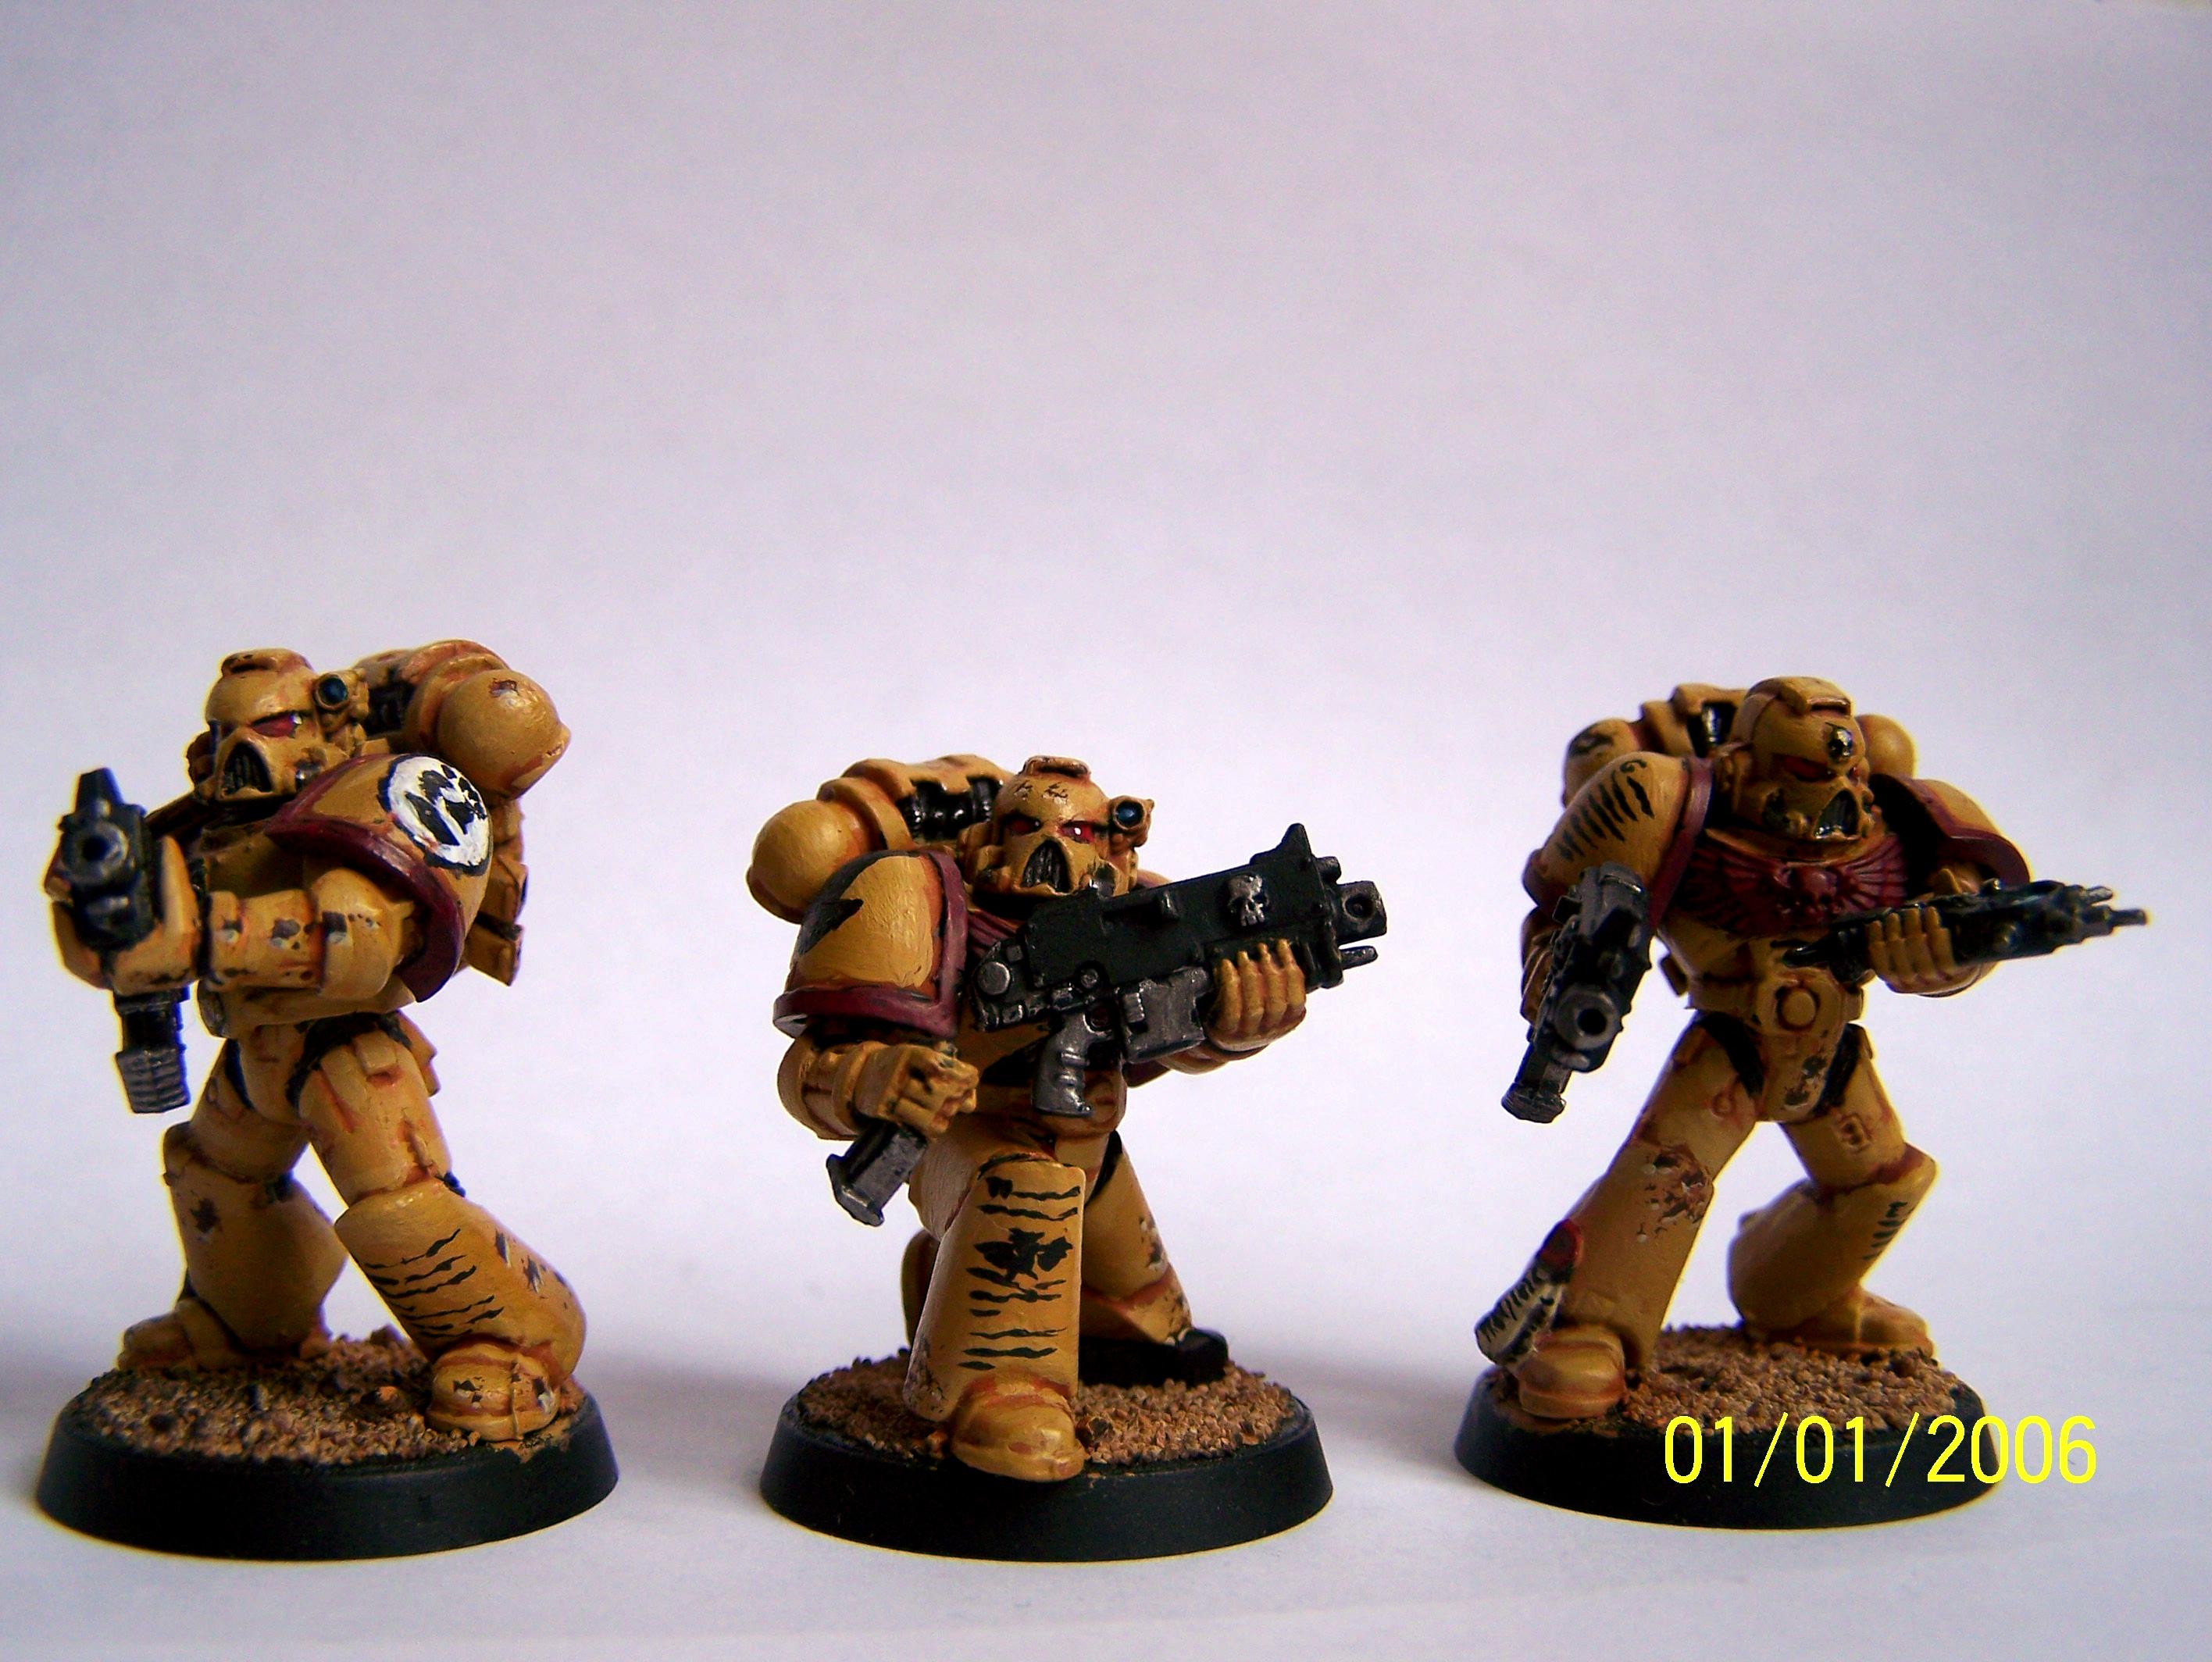 Imperial Fists, Space Marines, Tactical Squad, Warhammer 40,000